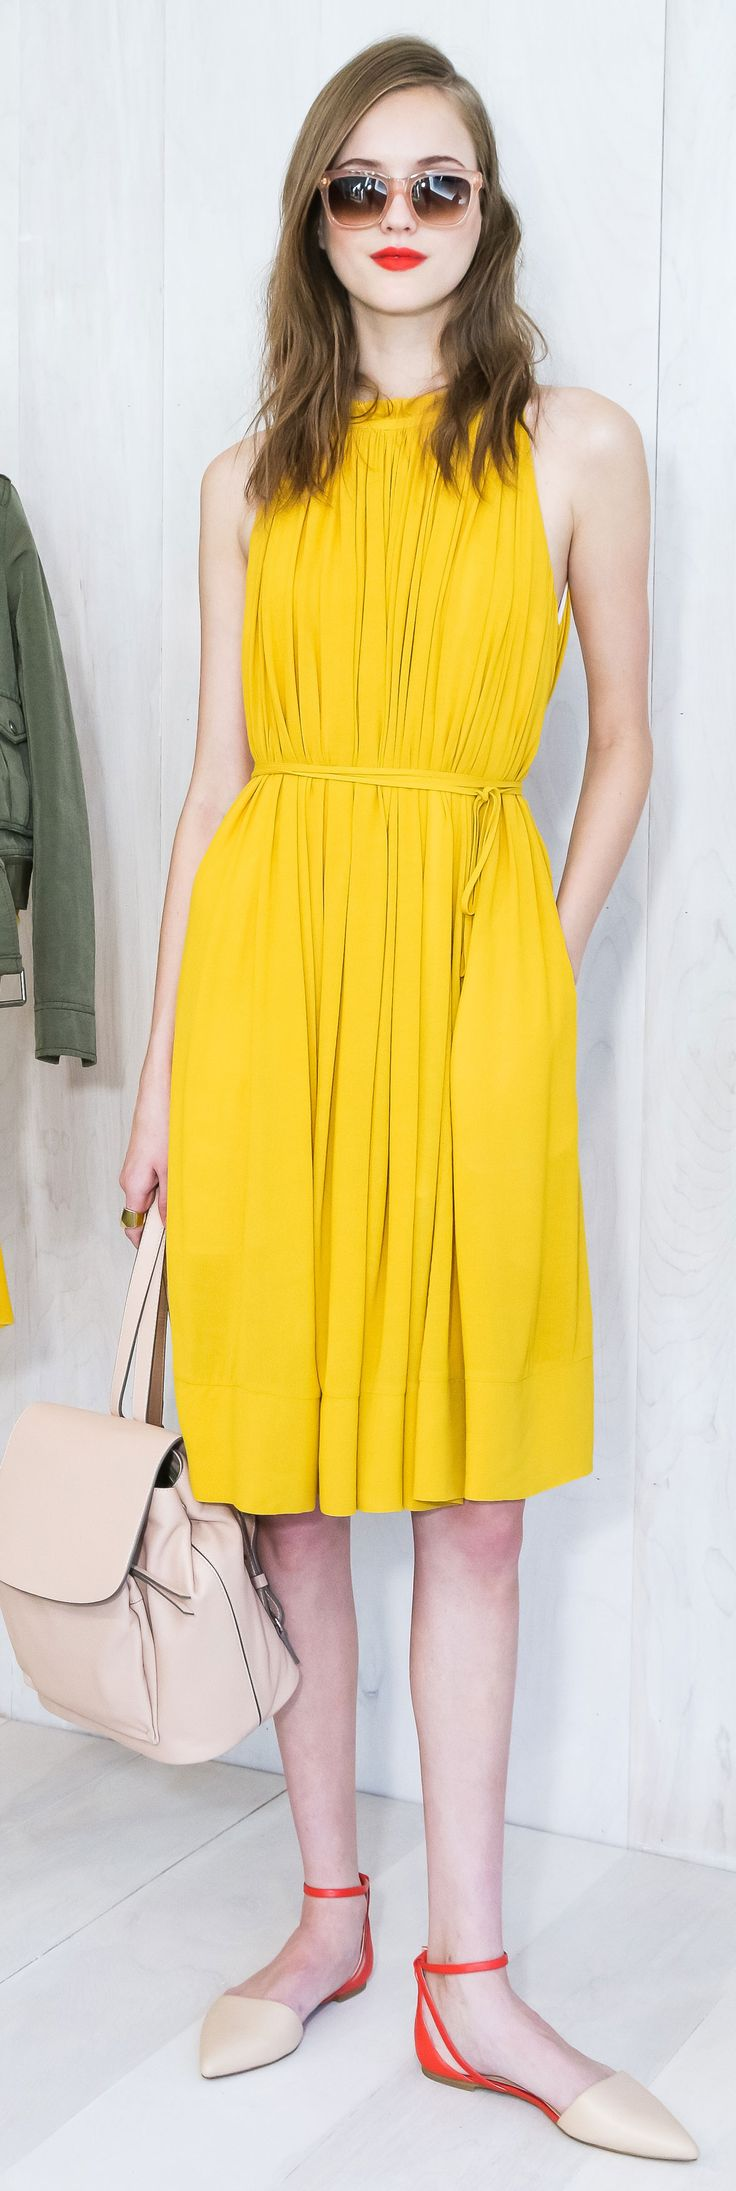 Banana Republic Spring 2015 collection is filled with bright color